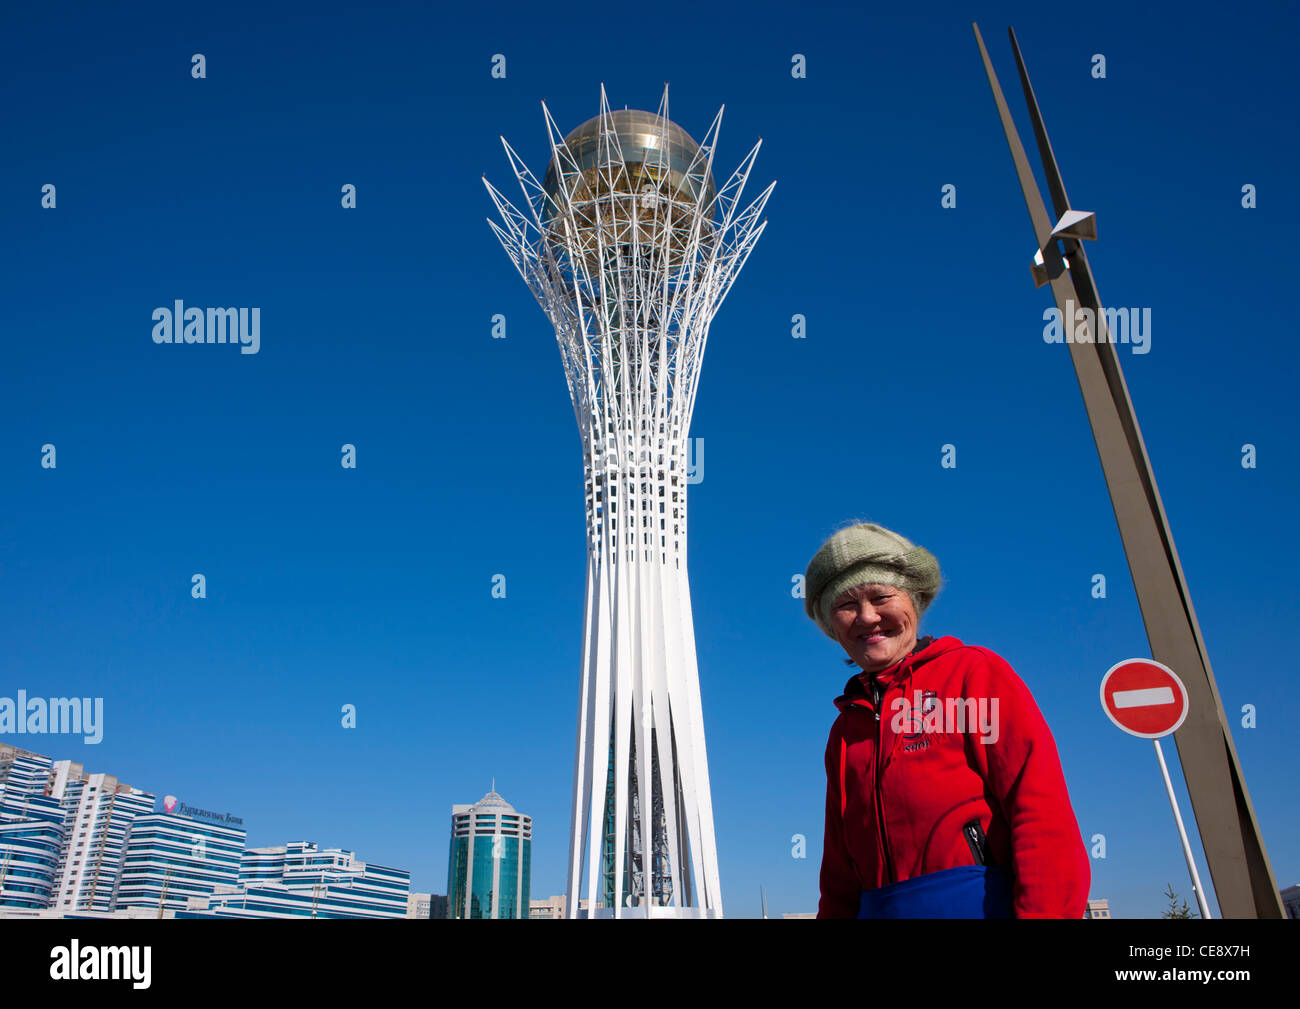 tower in astana stockfotos tower in astana bilder alamy. Black Bedroom Furniture Sets. Home Design Ideas